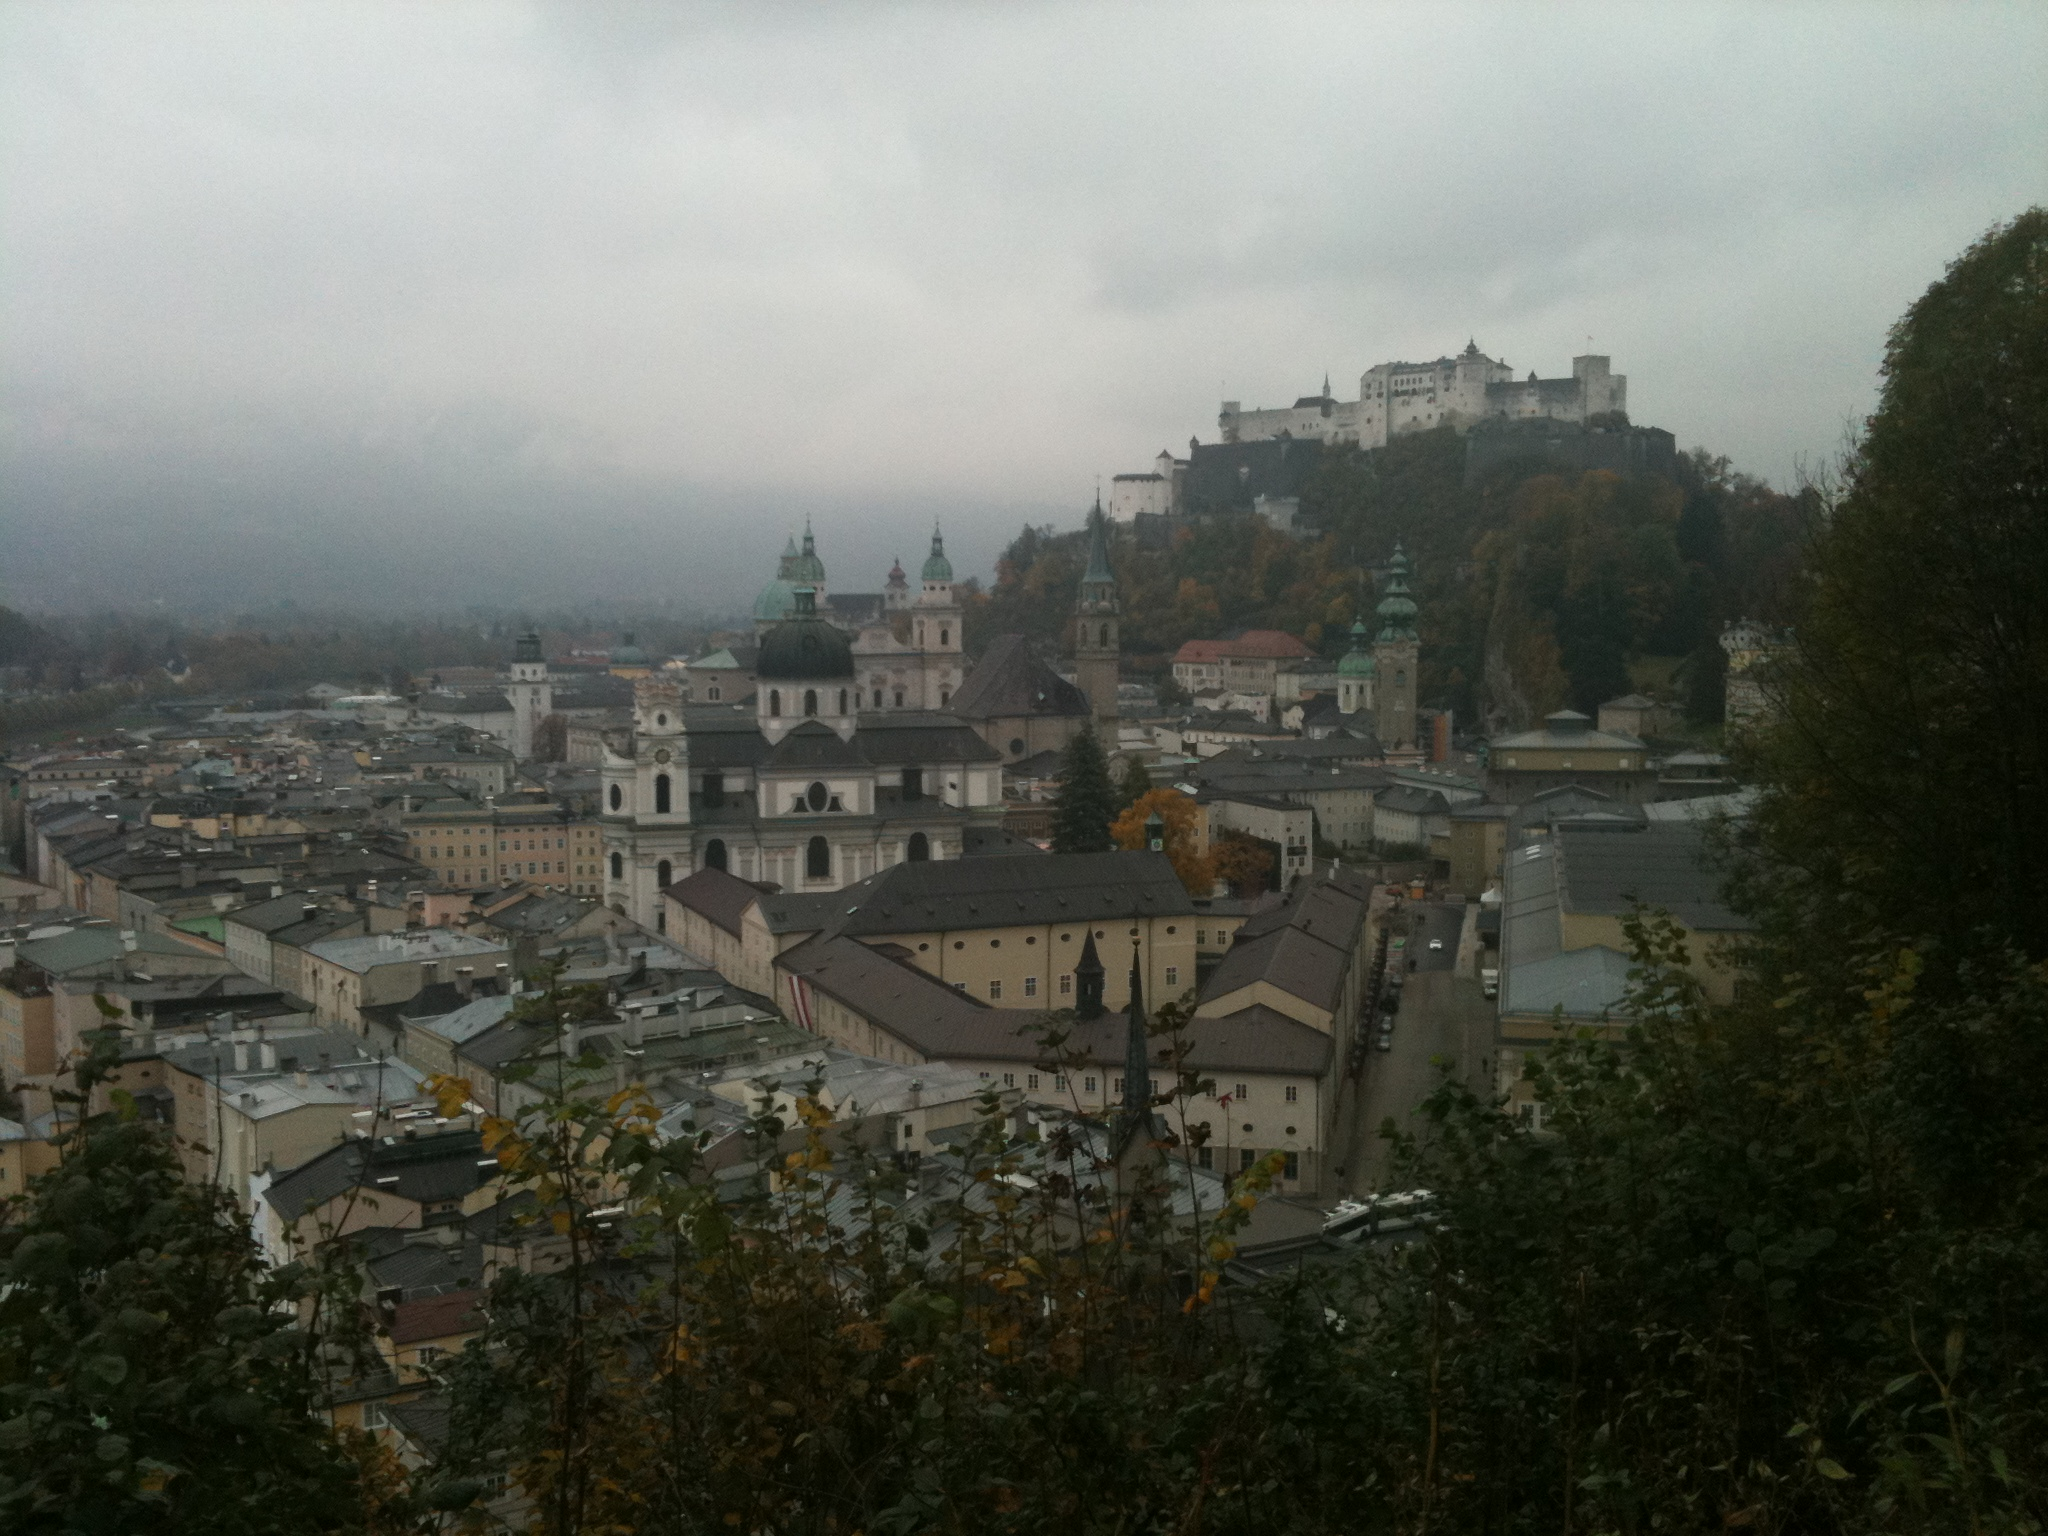 A grey day in Salzburg